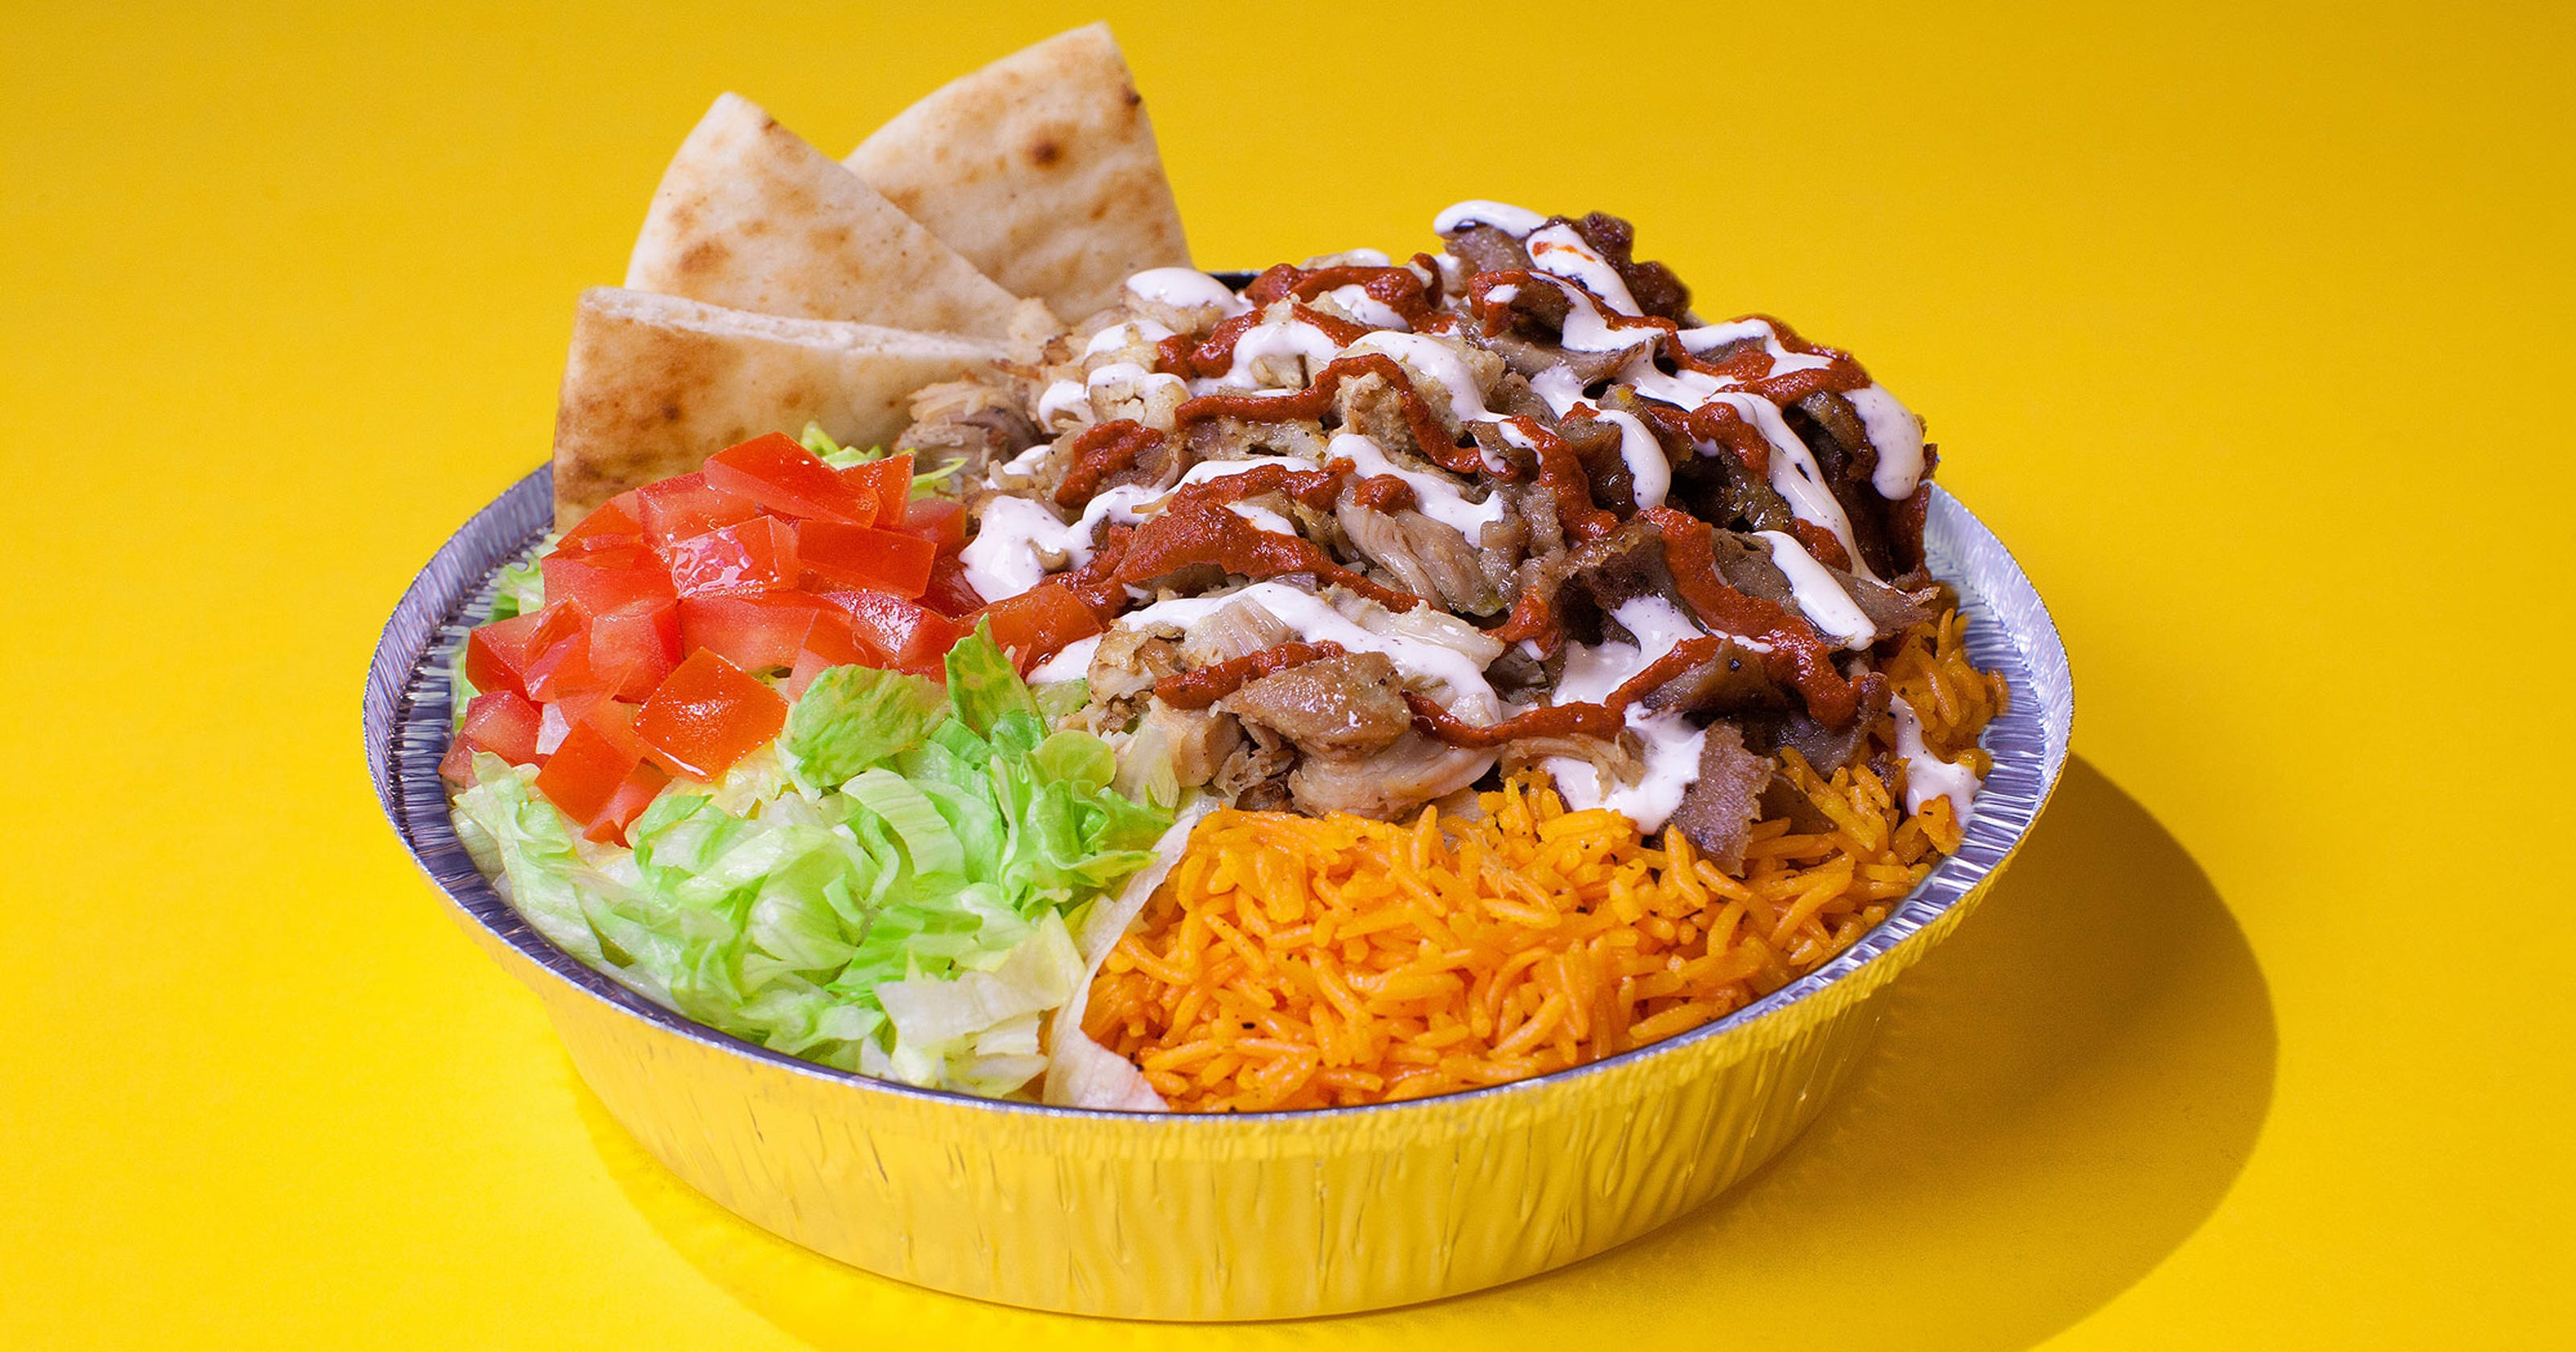 The Halal Guys opens in Avondale, more restaurants planned